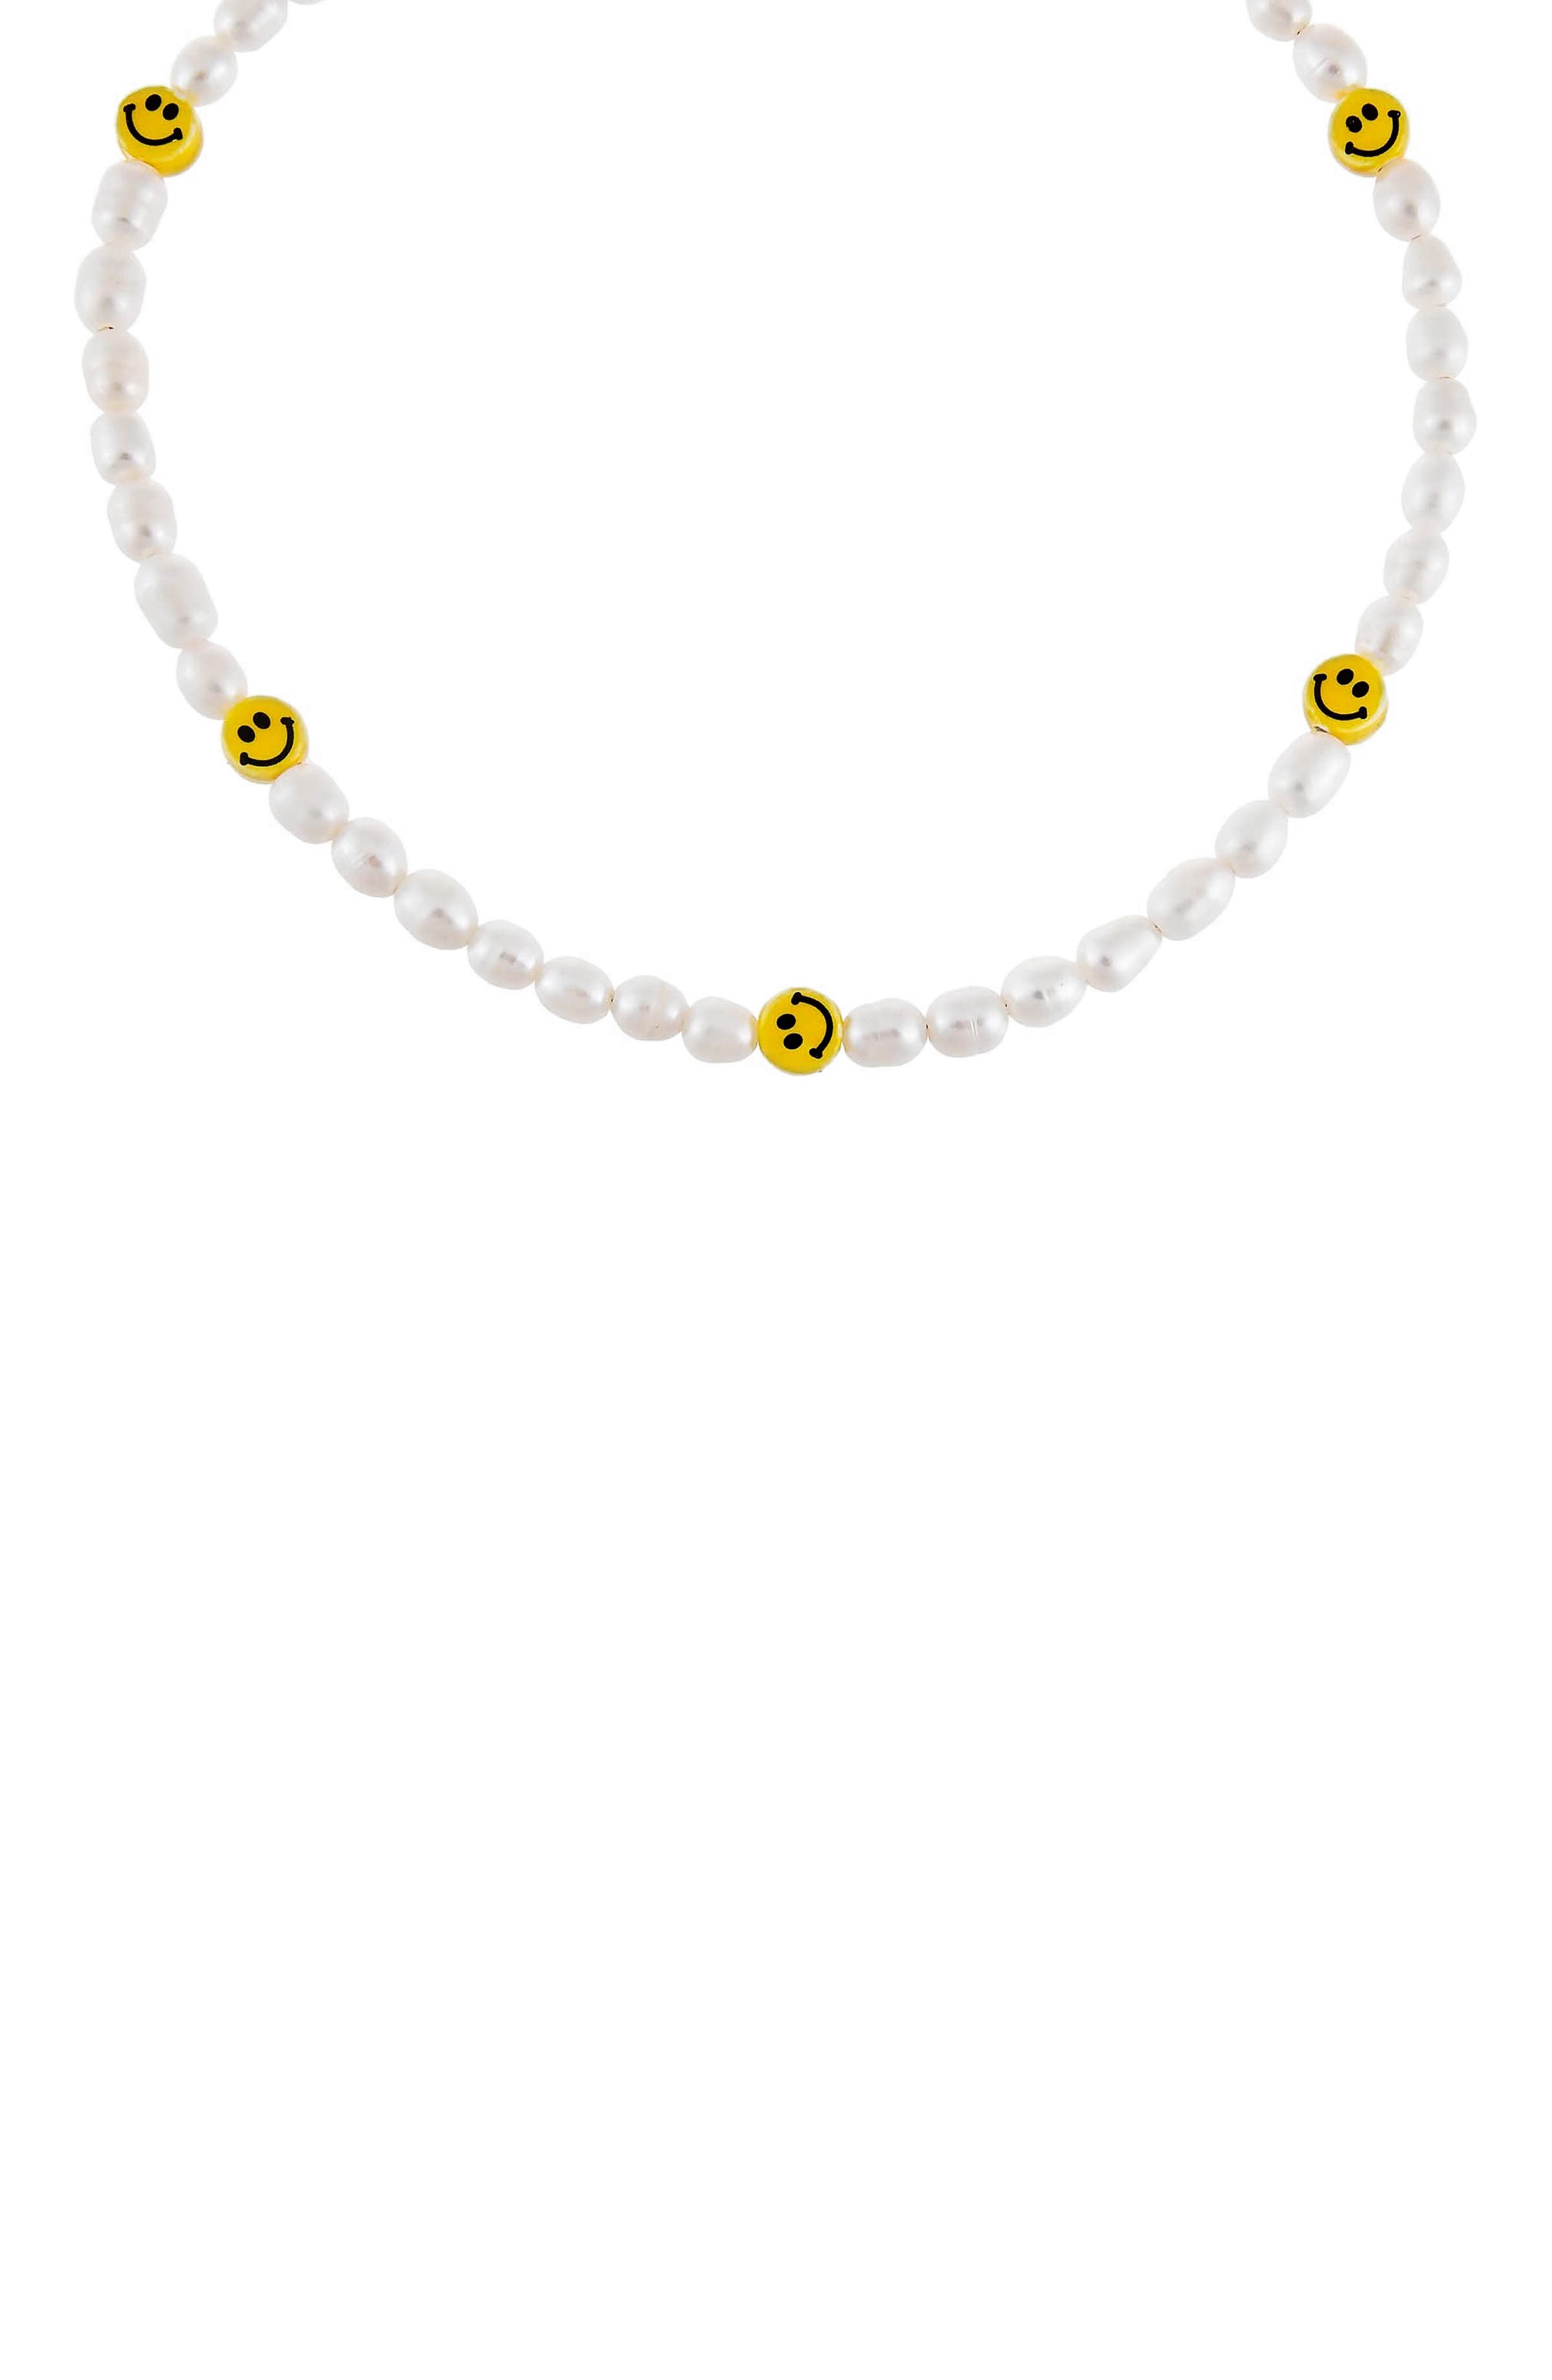 Women's Adina's Jewels Smiley Face Genuine Pearl Necklace